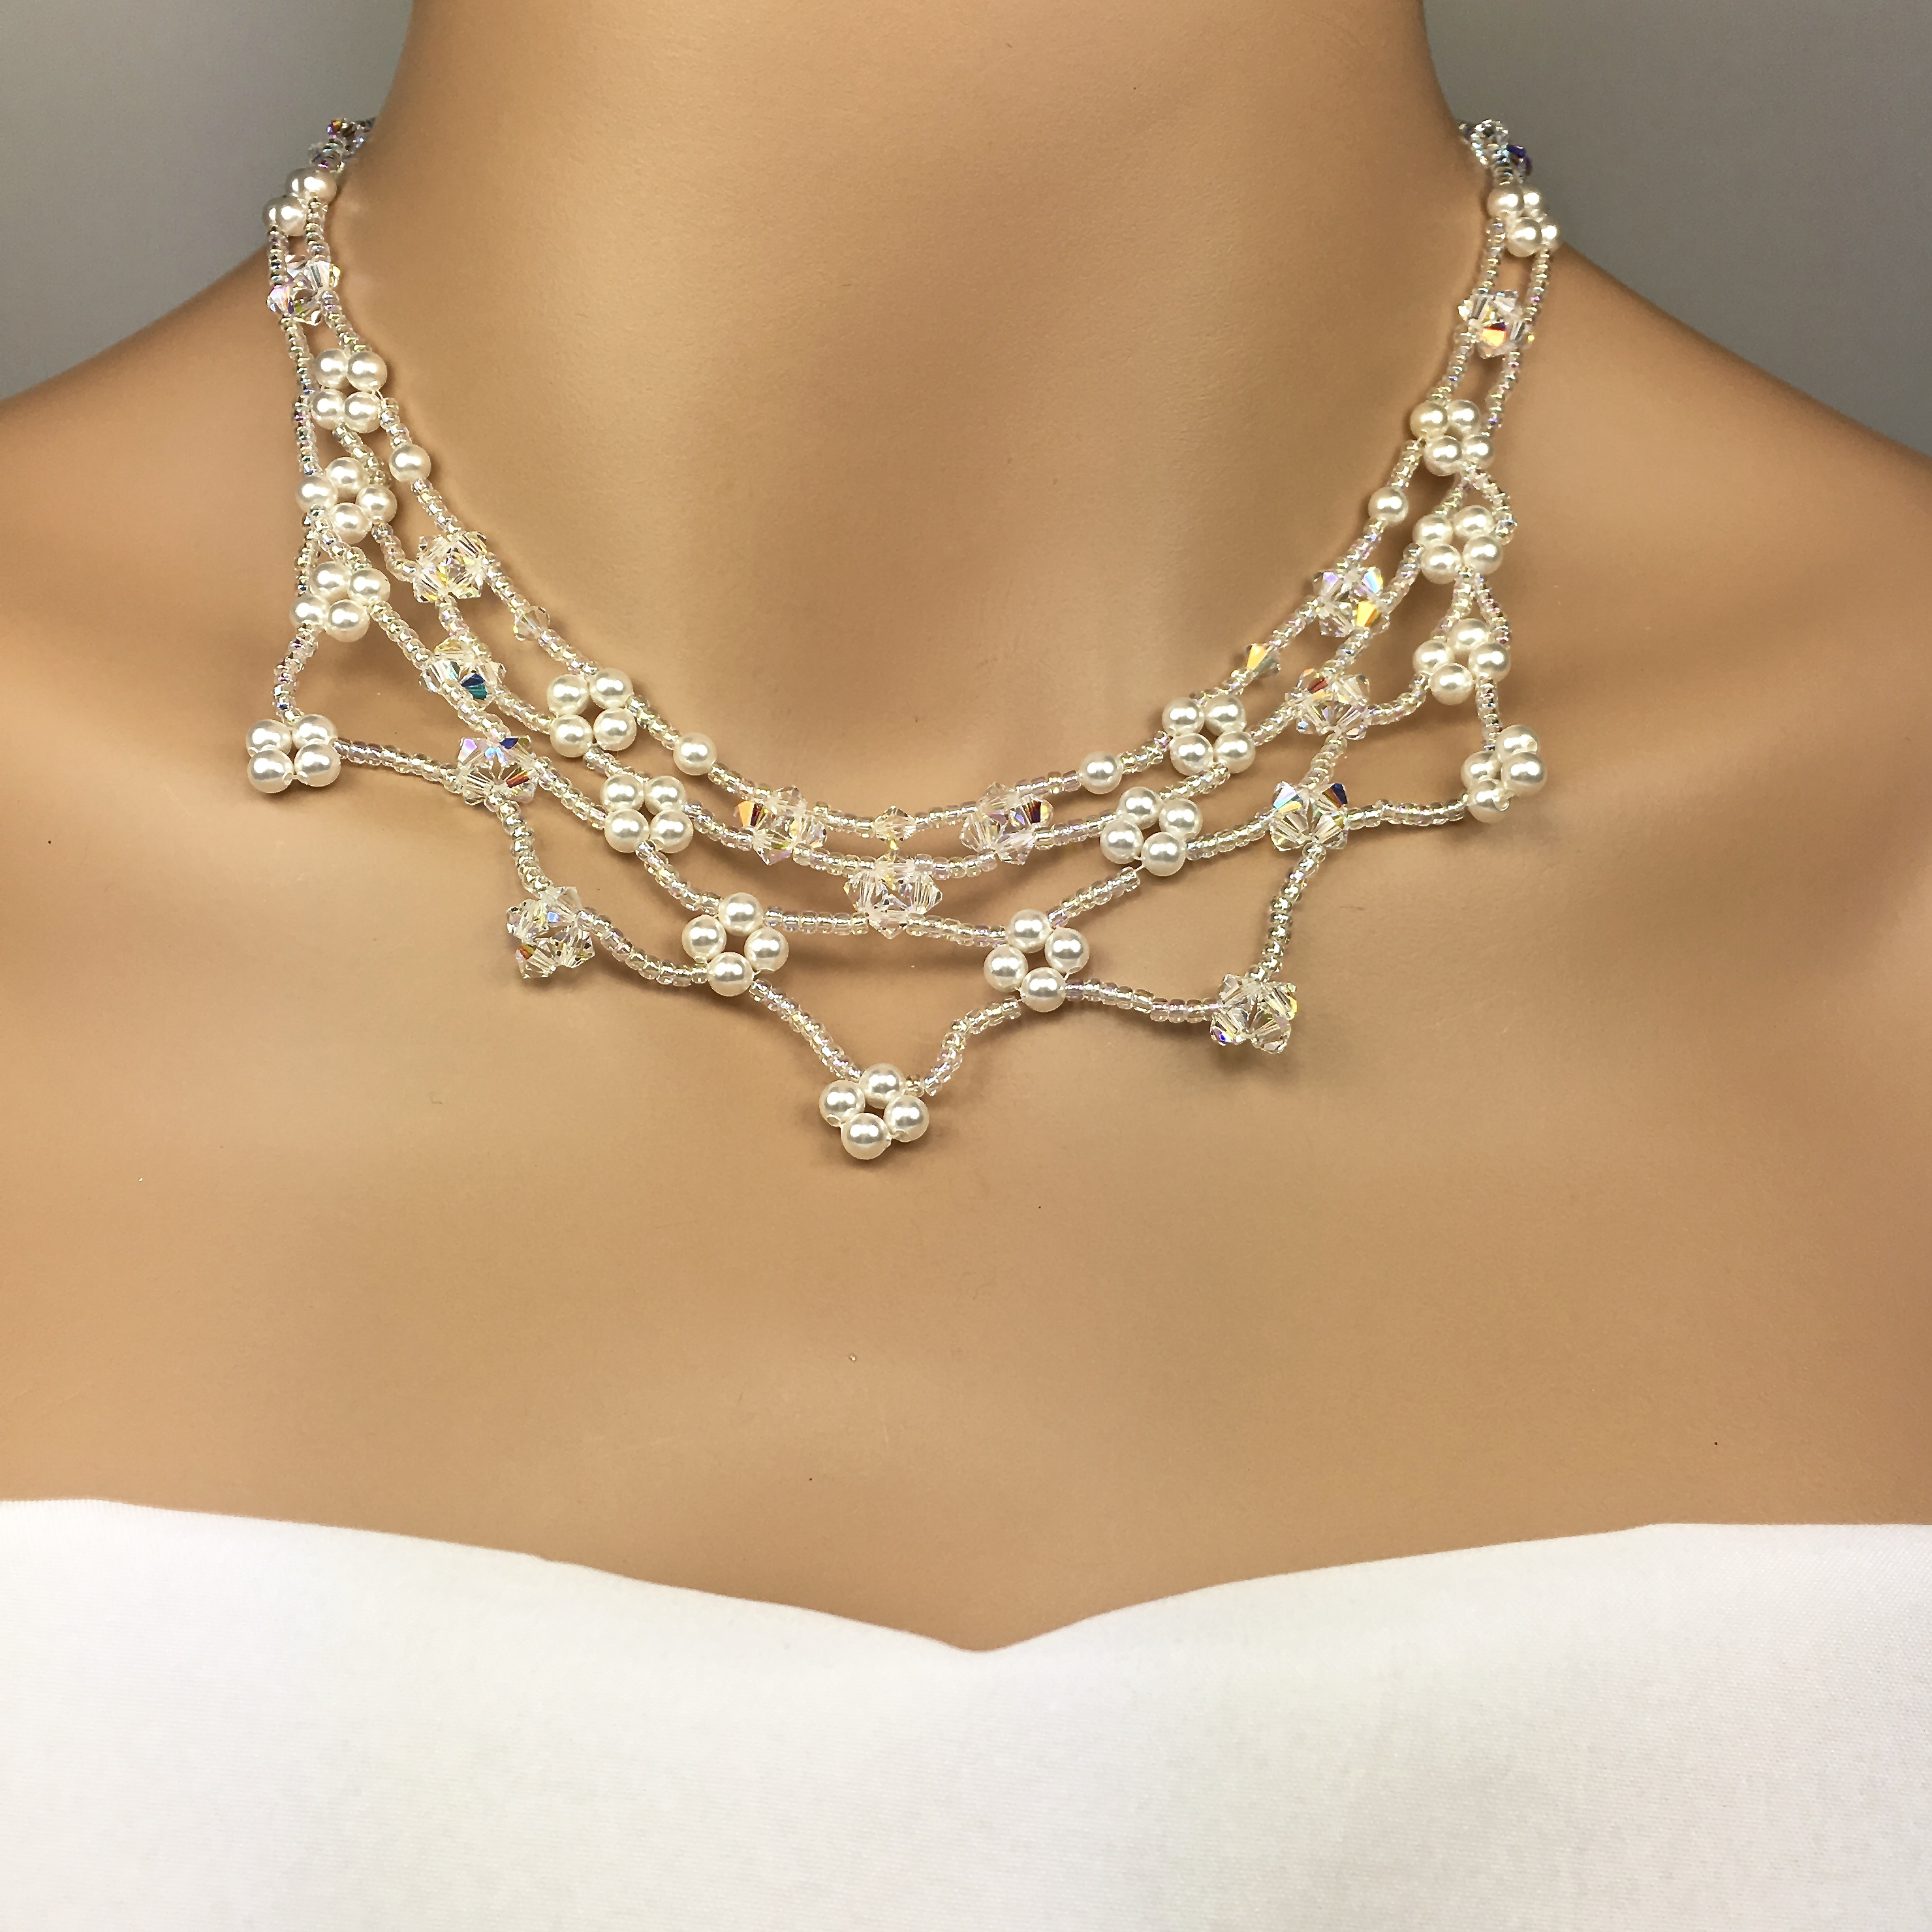 Beaded Floral Bridal Necklace